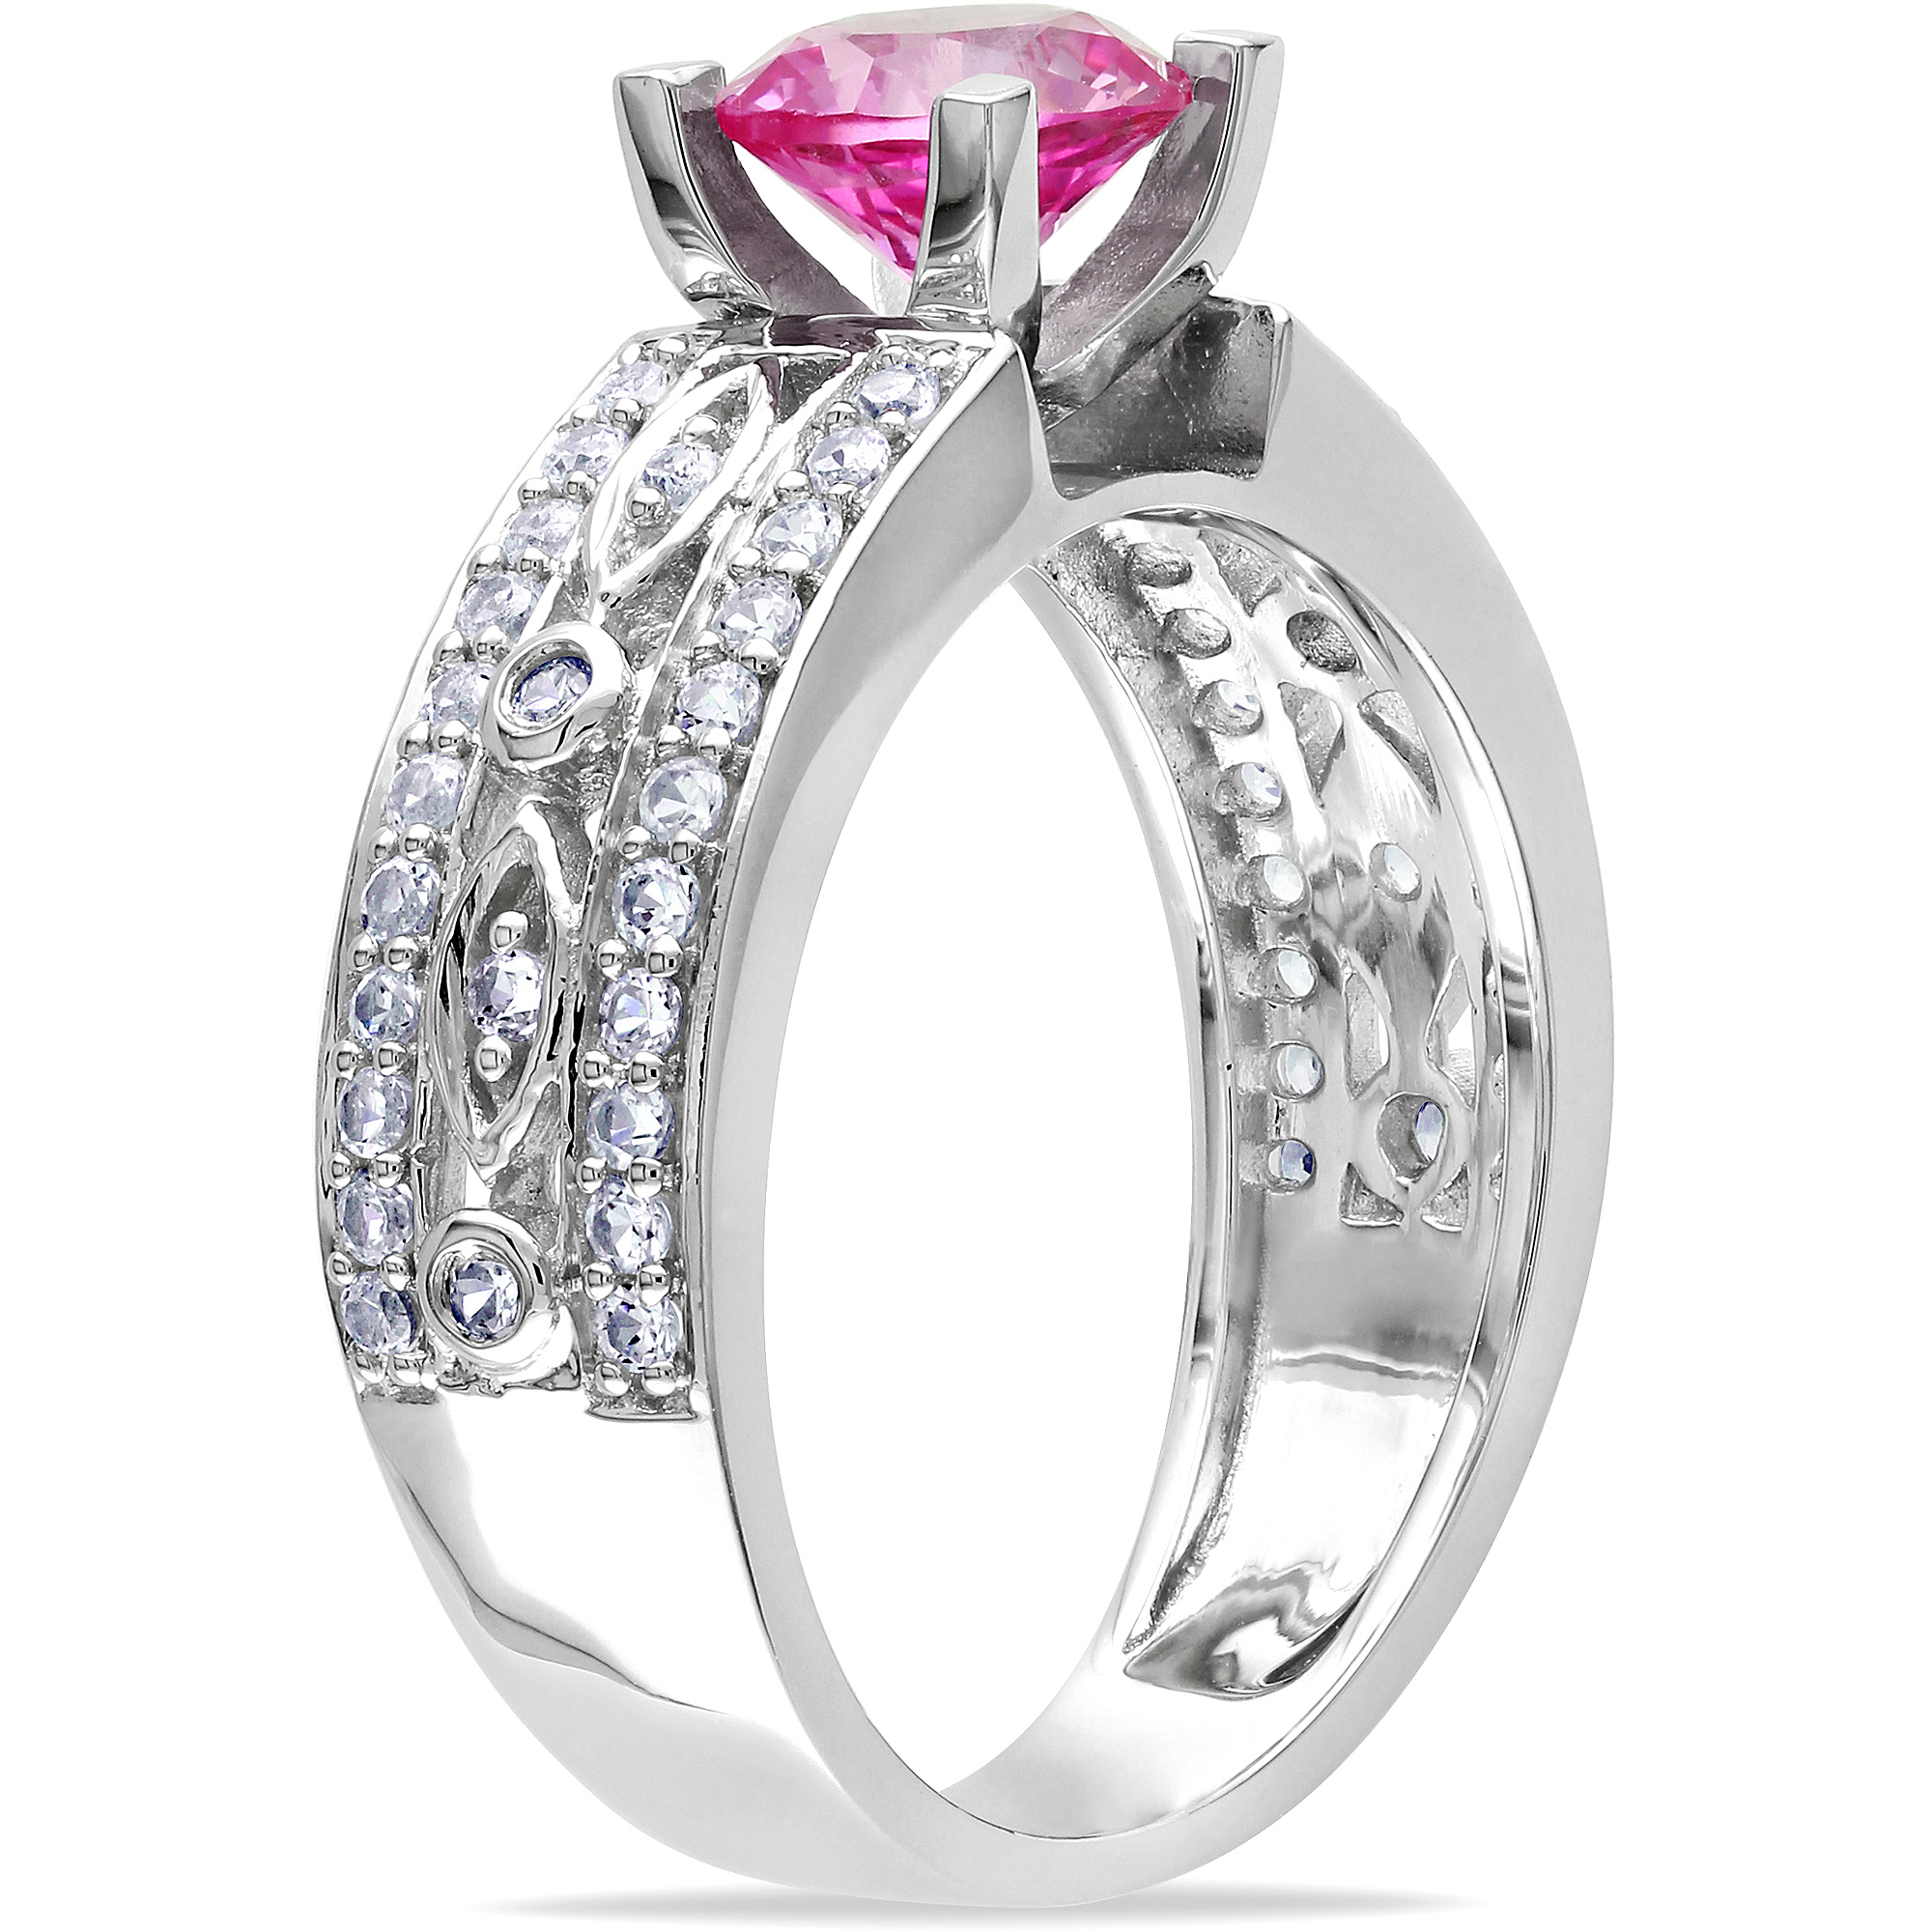 1-7/8 Carat T.G.W. Round Pink and White Sapphire Engagement Ring in Sterling Silver